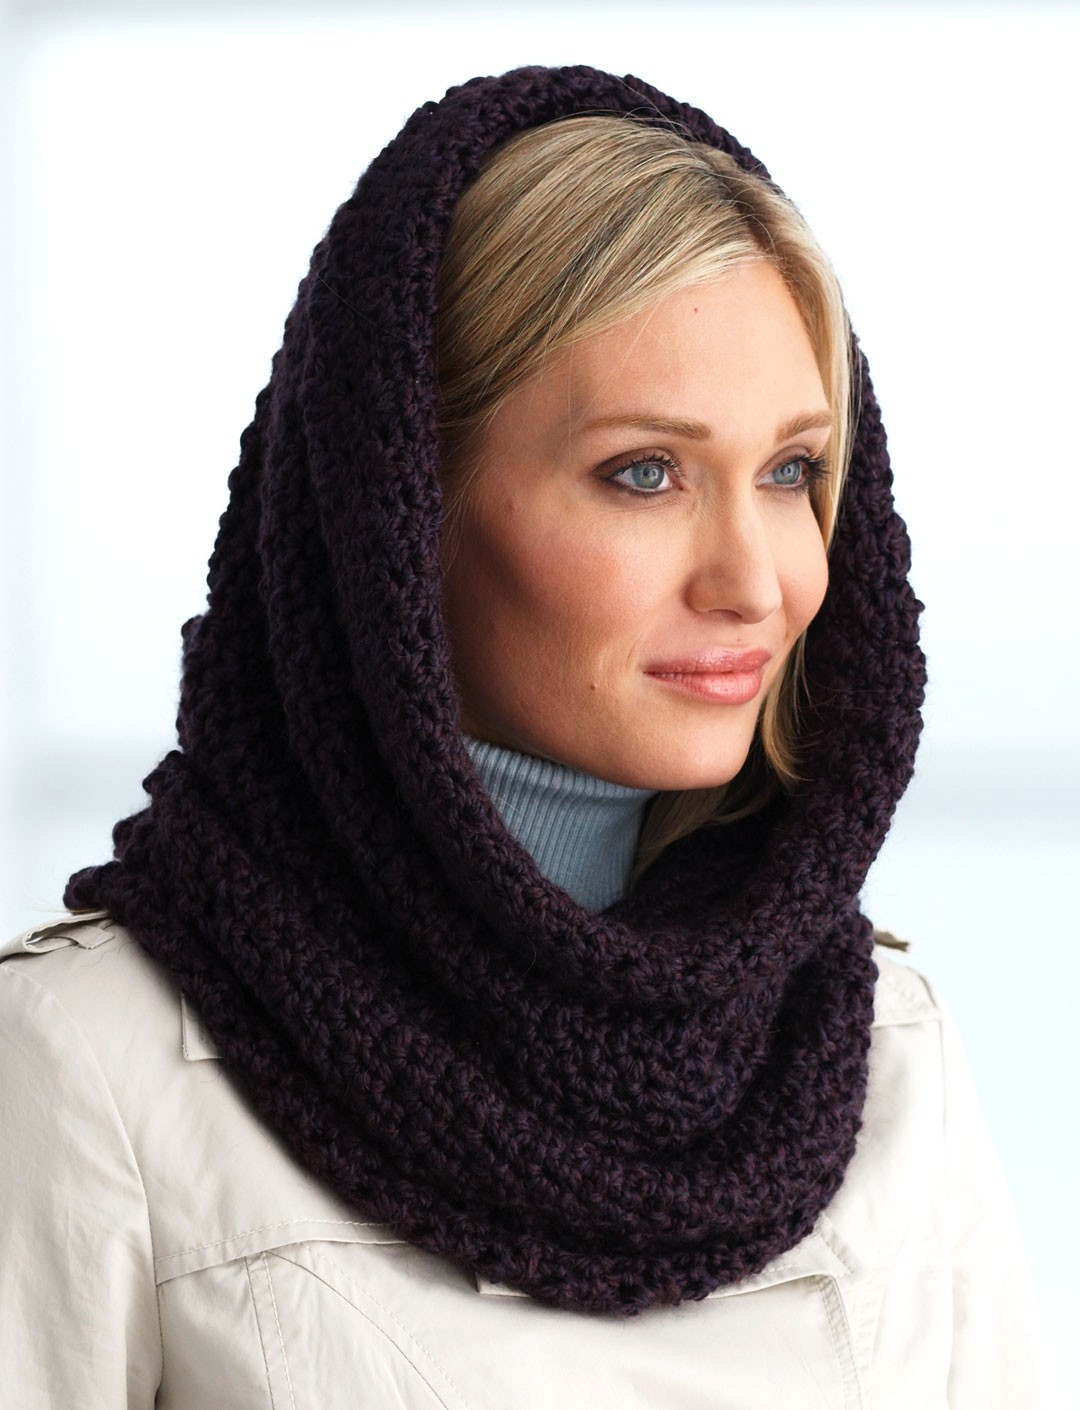 Bernat Hooded Cowl (Pattern) Yarnspirations